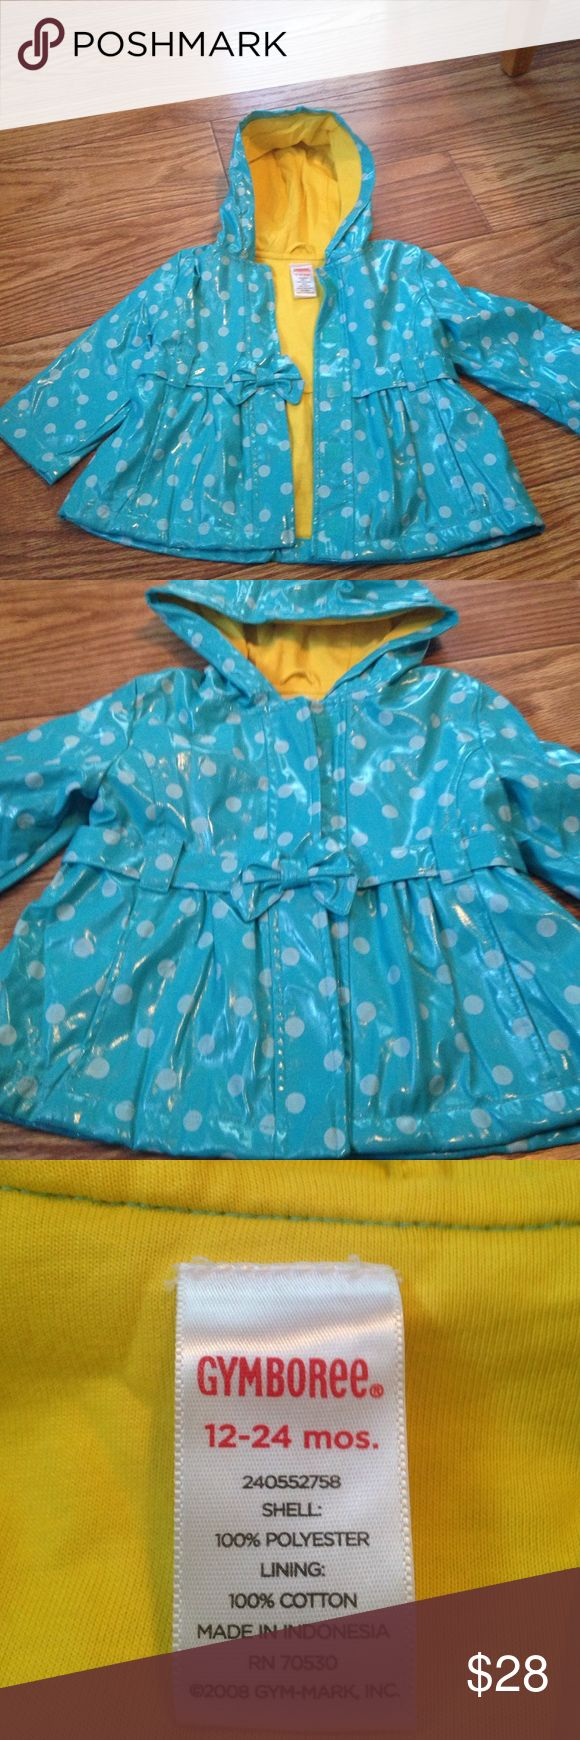 Gymboree Polka Dot Hooded Raincoat size 12-24 mths Super cute and never worn! Turquoise blue raincoat with velcro closures and hood. Bright yellow interior. No signs of use or wear! From Gymboree size 12-24 months. Gymboree Jackets & Coats Raincoats